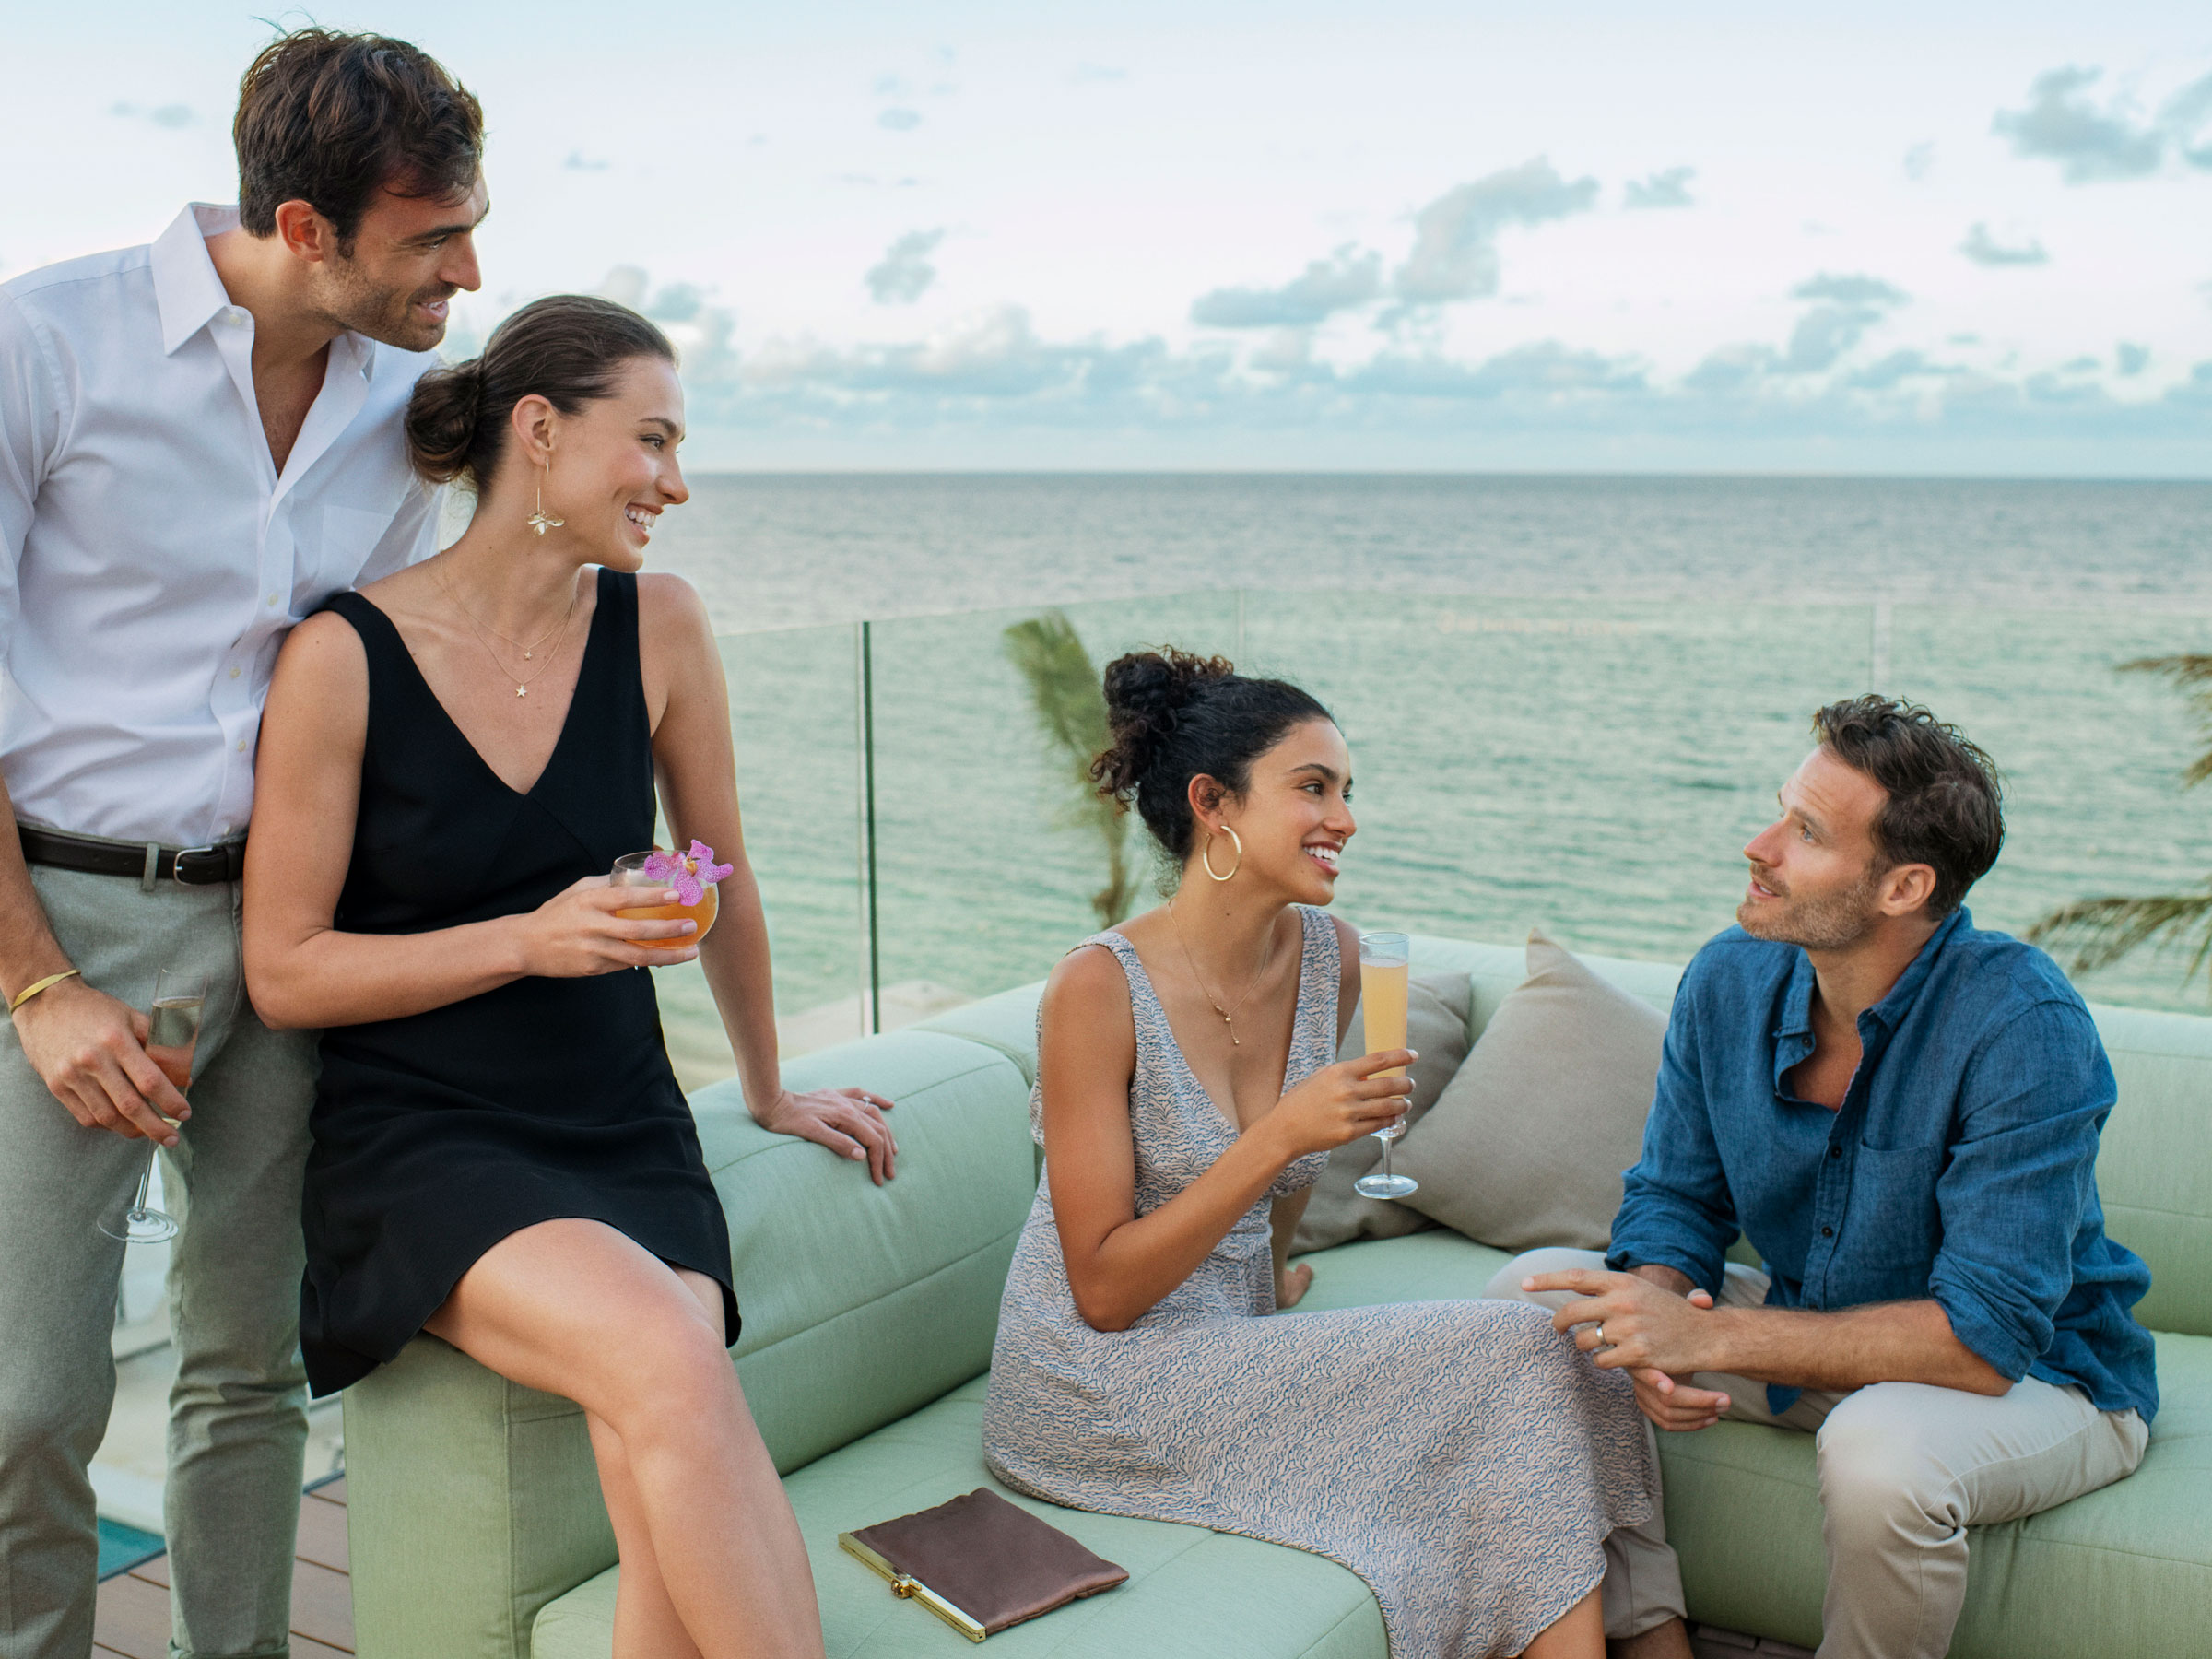 Sunset Cocktails at Rooftop Bars in Jamaica